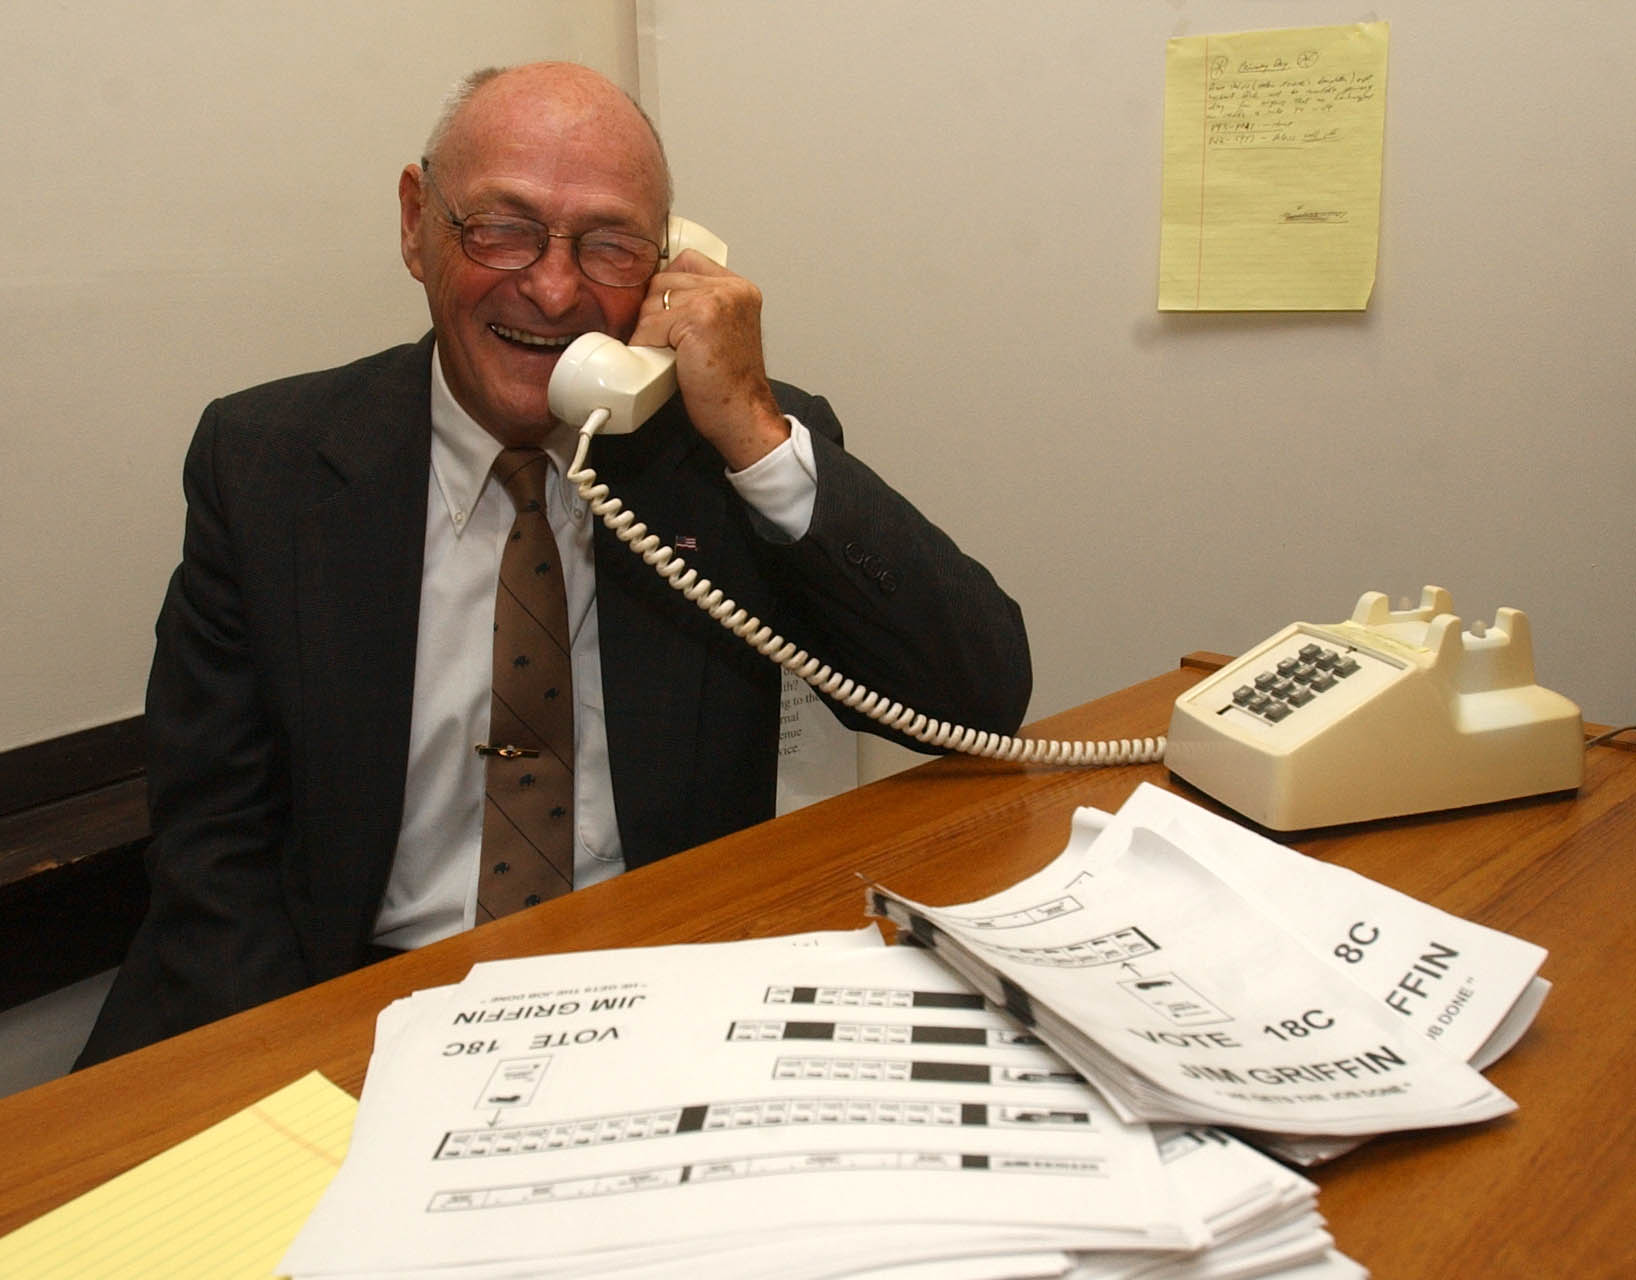 Former Buffalo Mayor Jimmy Griffin at his campaign headquarters after learning he defeated incumbent council member Mary Martino to win the primary election on 9/9/2003. Photo by Derek Gee